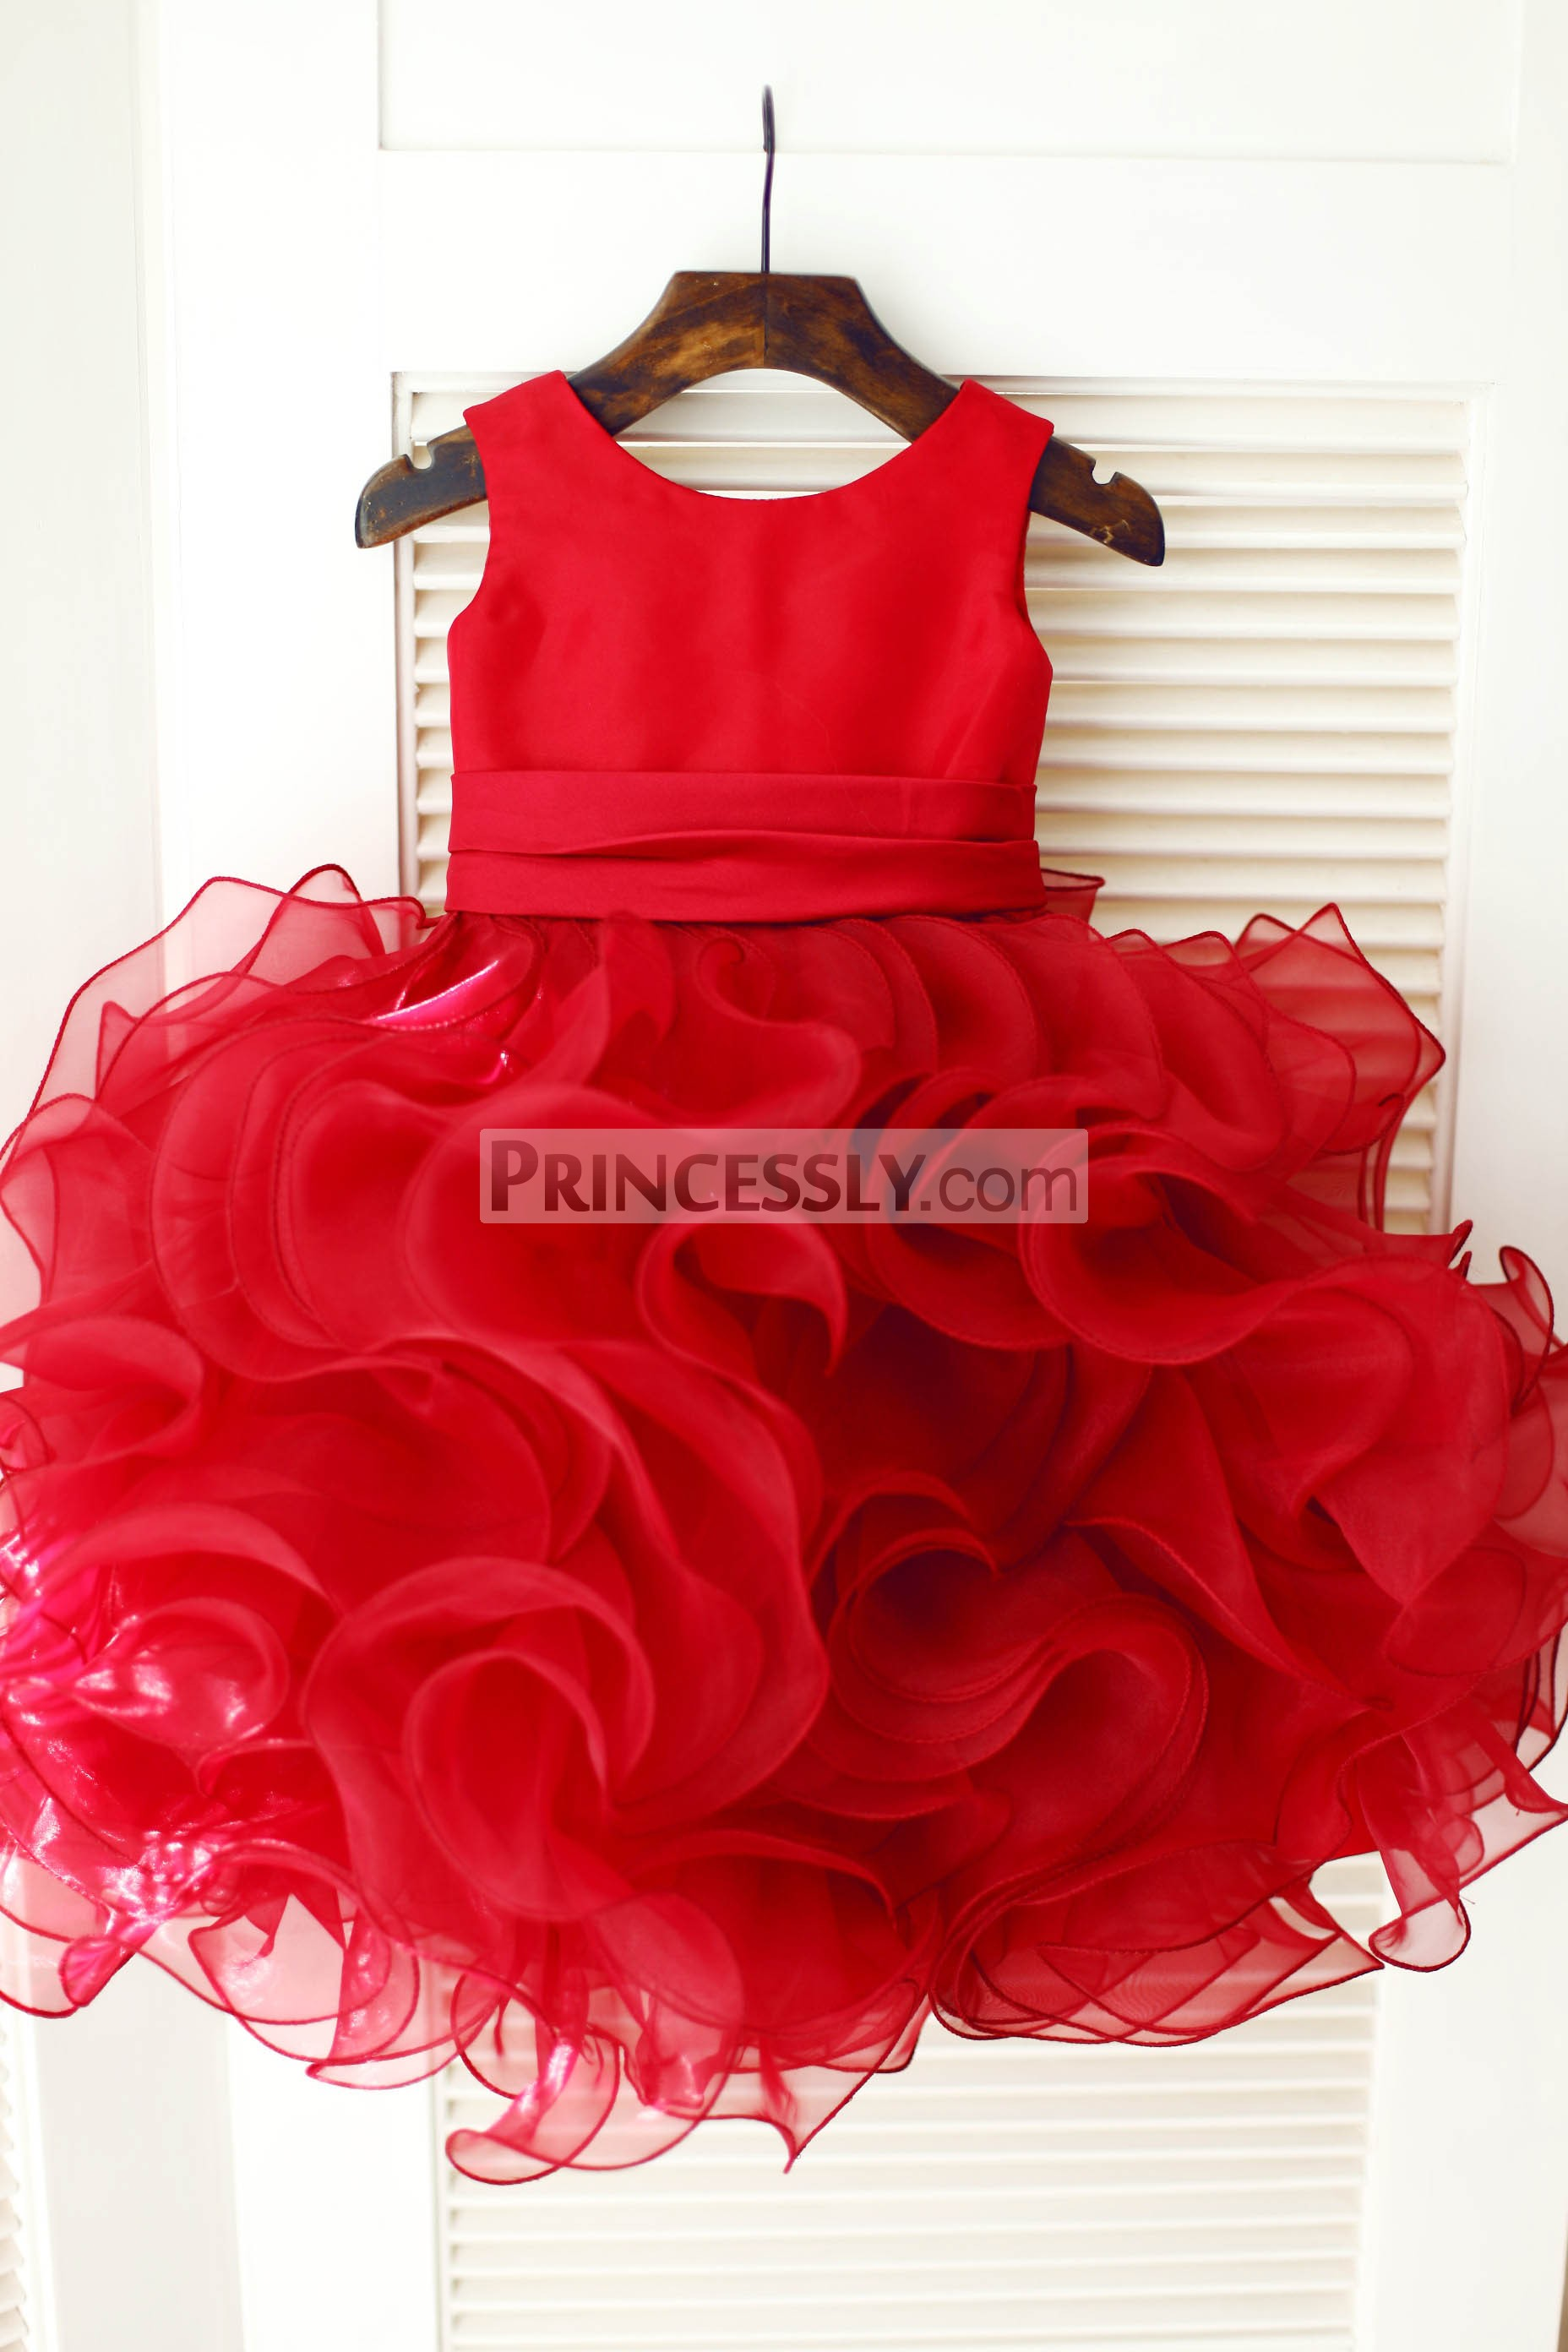 Red Satin Organza Wedding Baby Girl Dress with Flowers